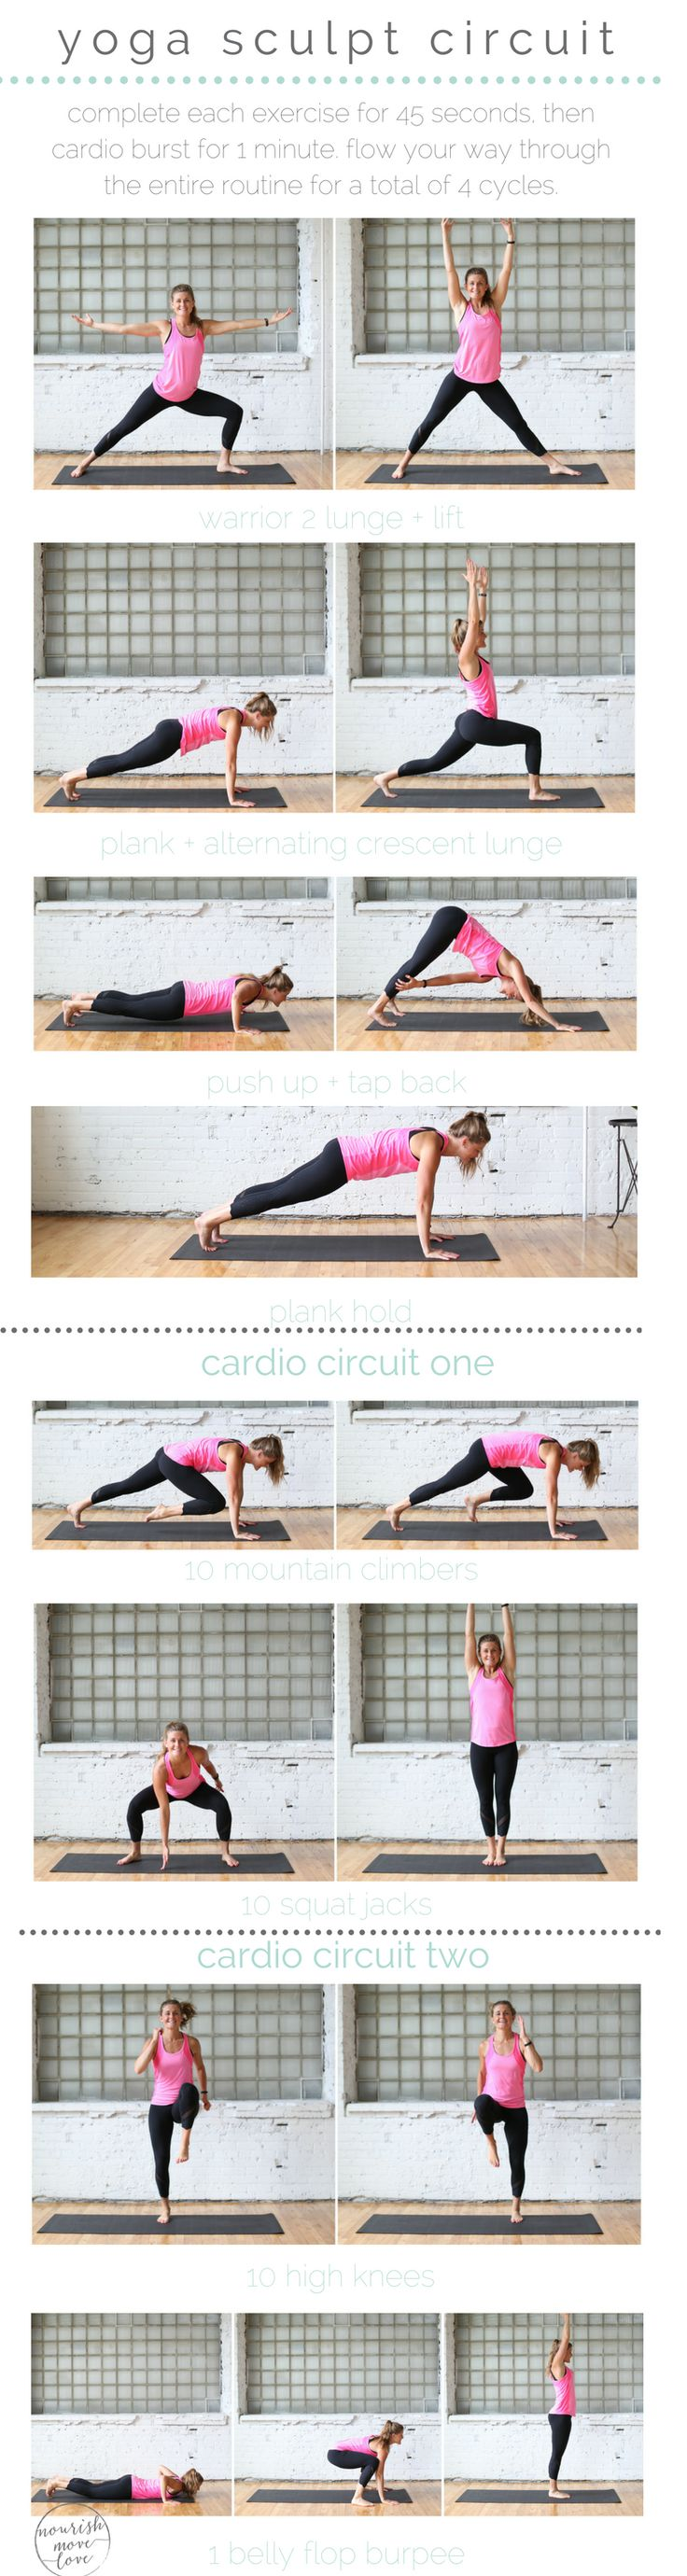 four yoga-inspired strength exercises paired with two cardio intervals for a 30 minute, yoga sculpt circuit workout that's sure to tighten, tone, and get your heart pumping.